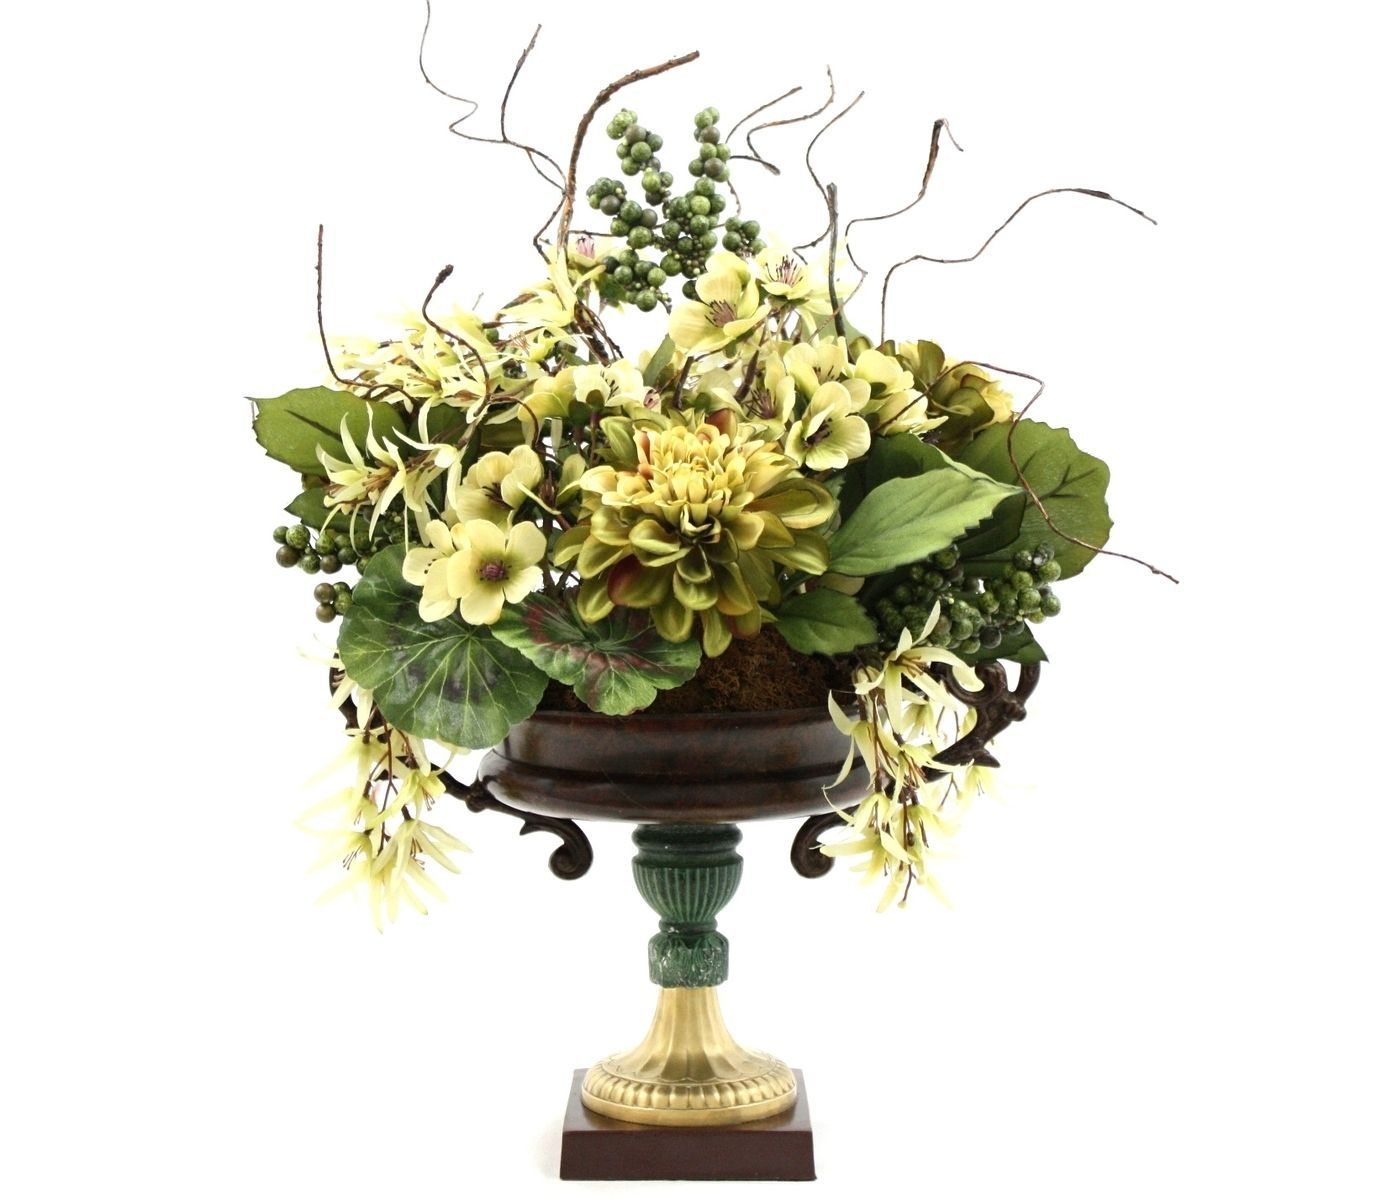 Custom made dining table centerpiece silk flower arrangement home decorating ideas vintage luxury table